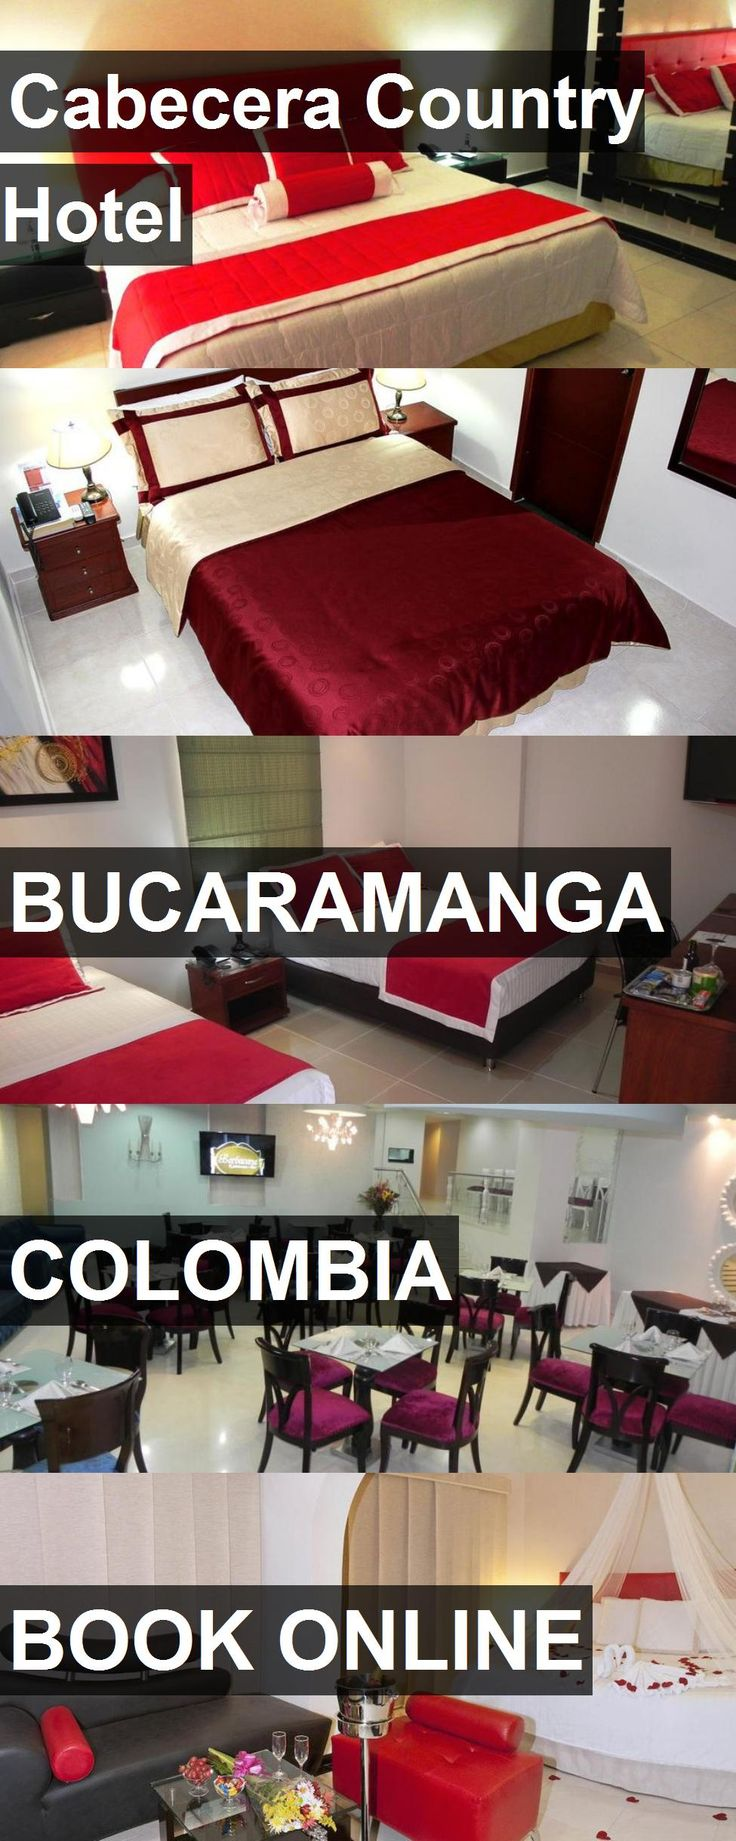 Cabecera Country Hotel in Bucaramanga, Colombia. For more information, photos, reviews and best prices please follow the link. #Colombia #Bucaramanga #travel #vacation #hotel